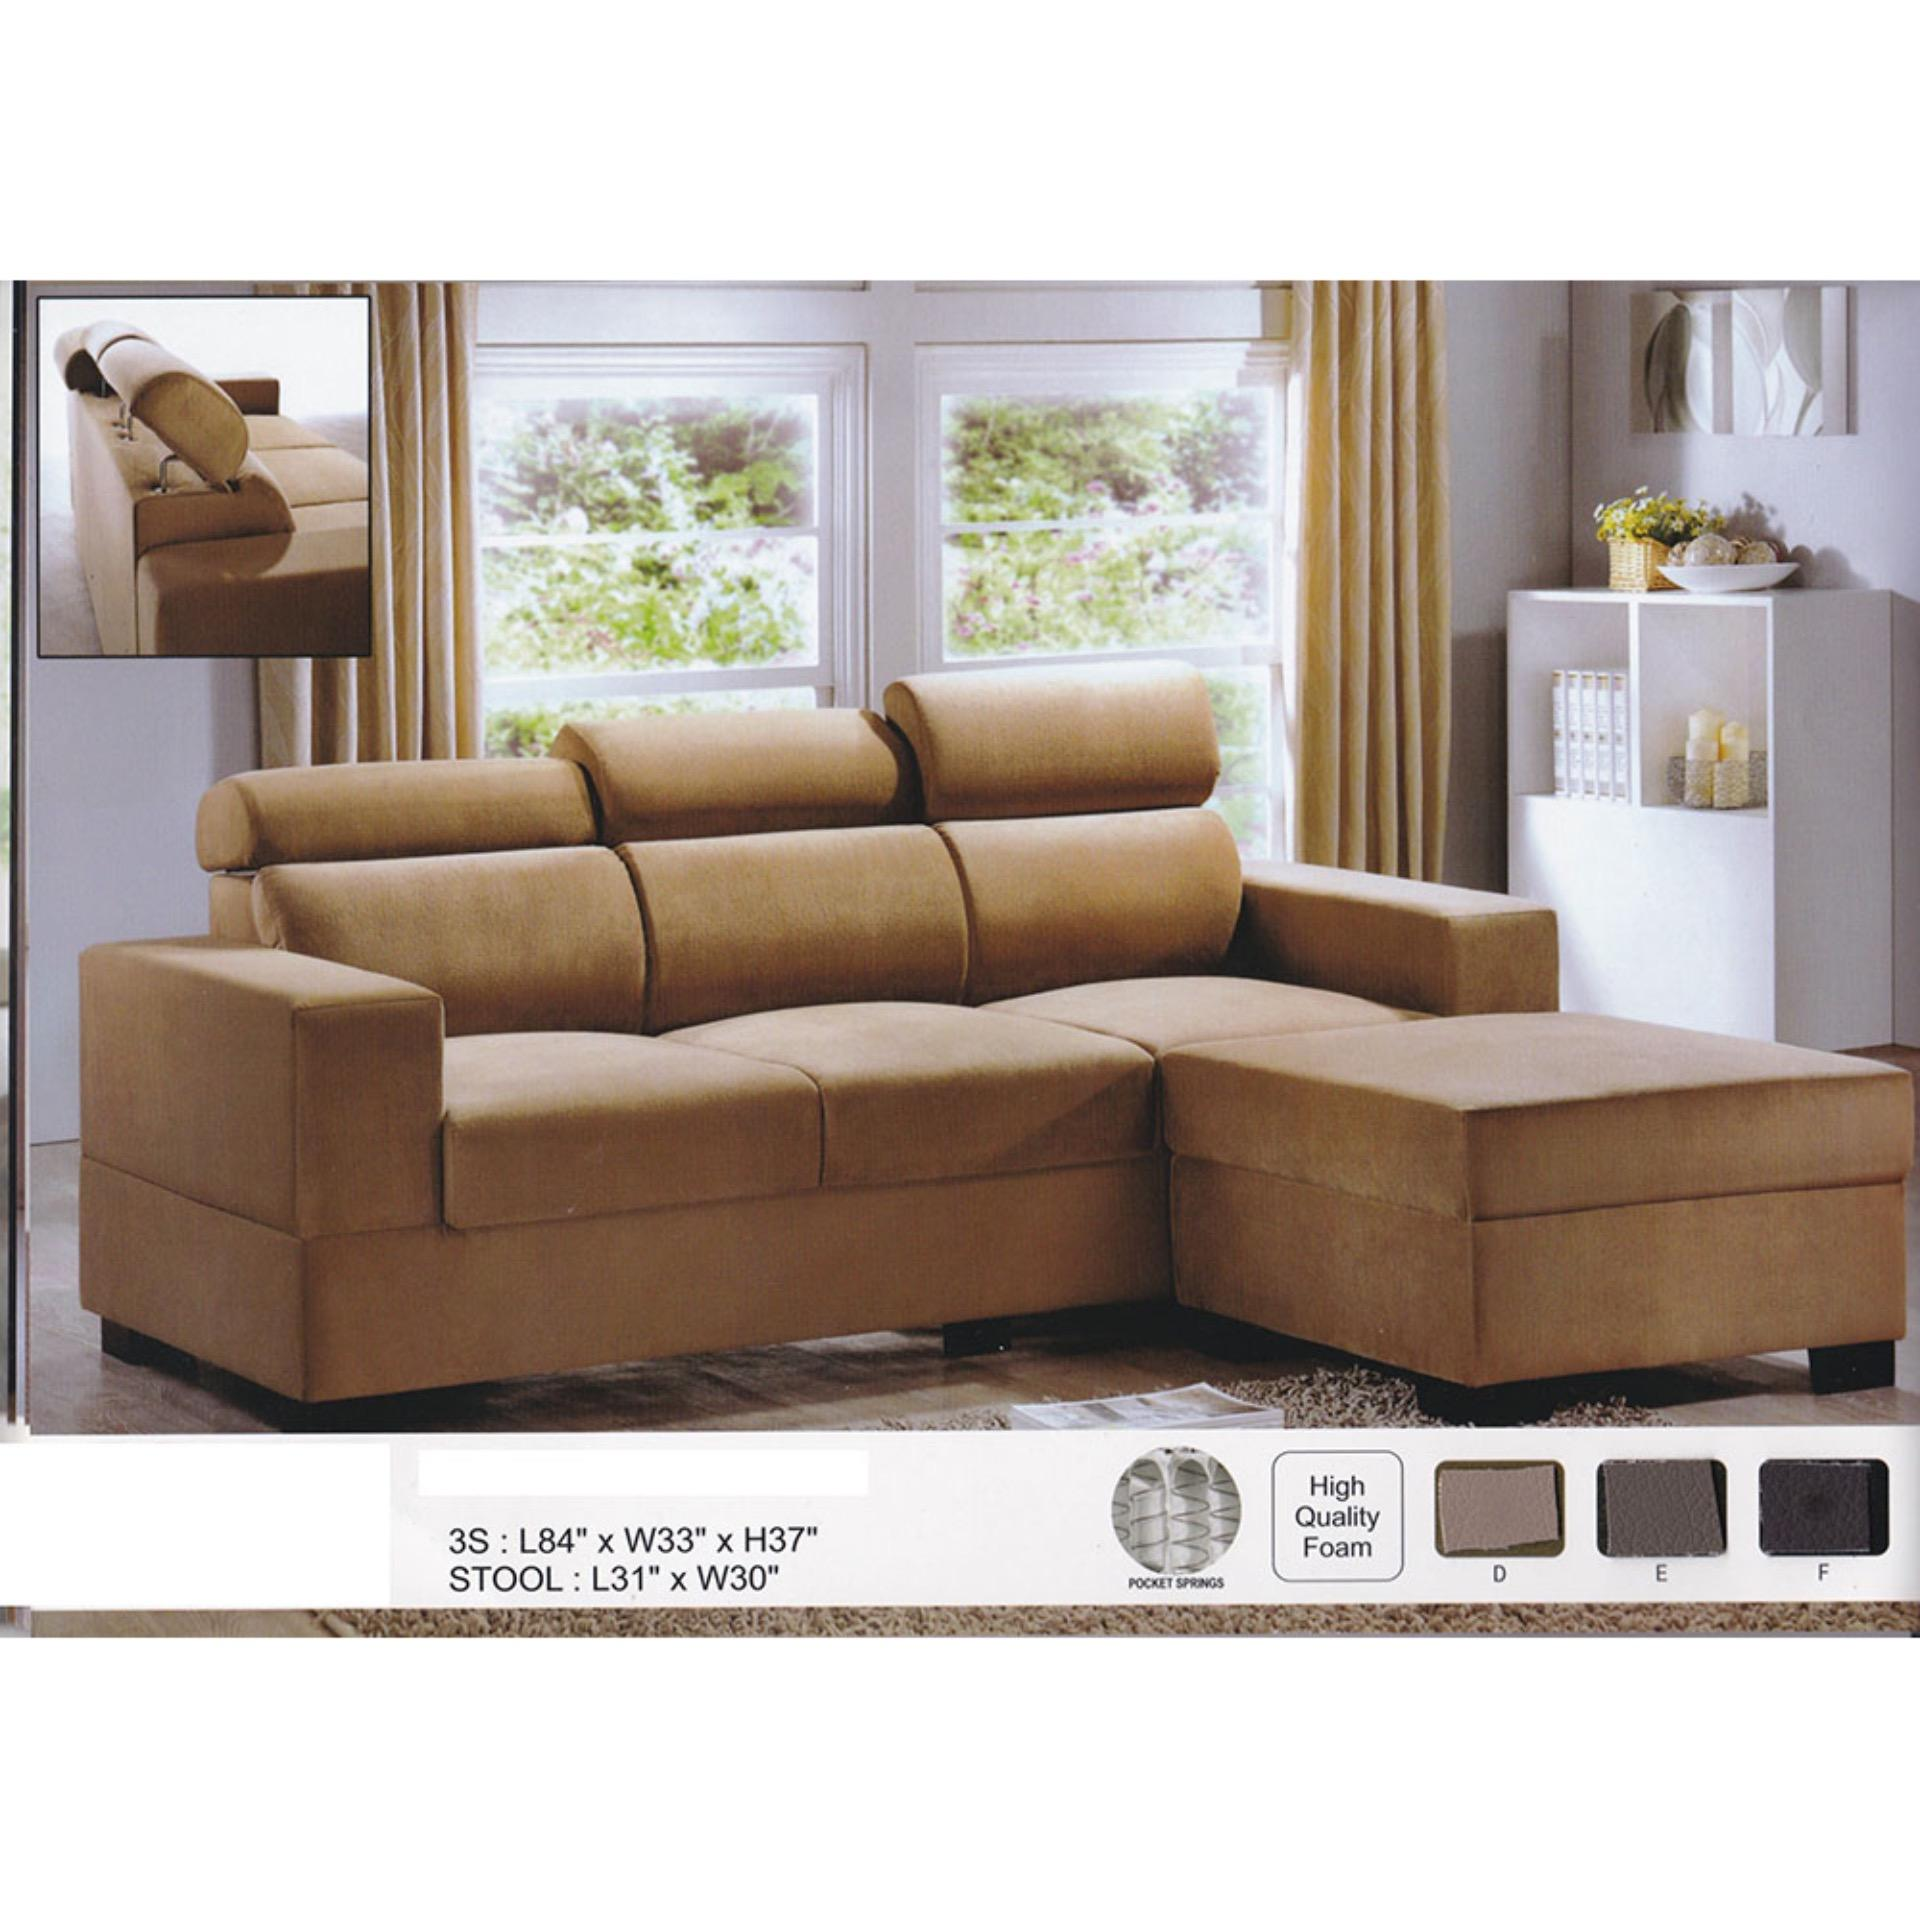 Strange L Shape Fully Leather Sofa Brown Color L2135Mm X W838Mm X H940Mm Download Free Architecture Designs Grimeyleaguecom